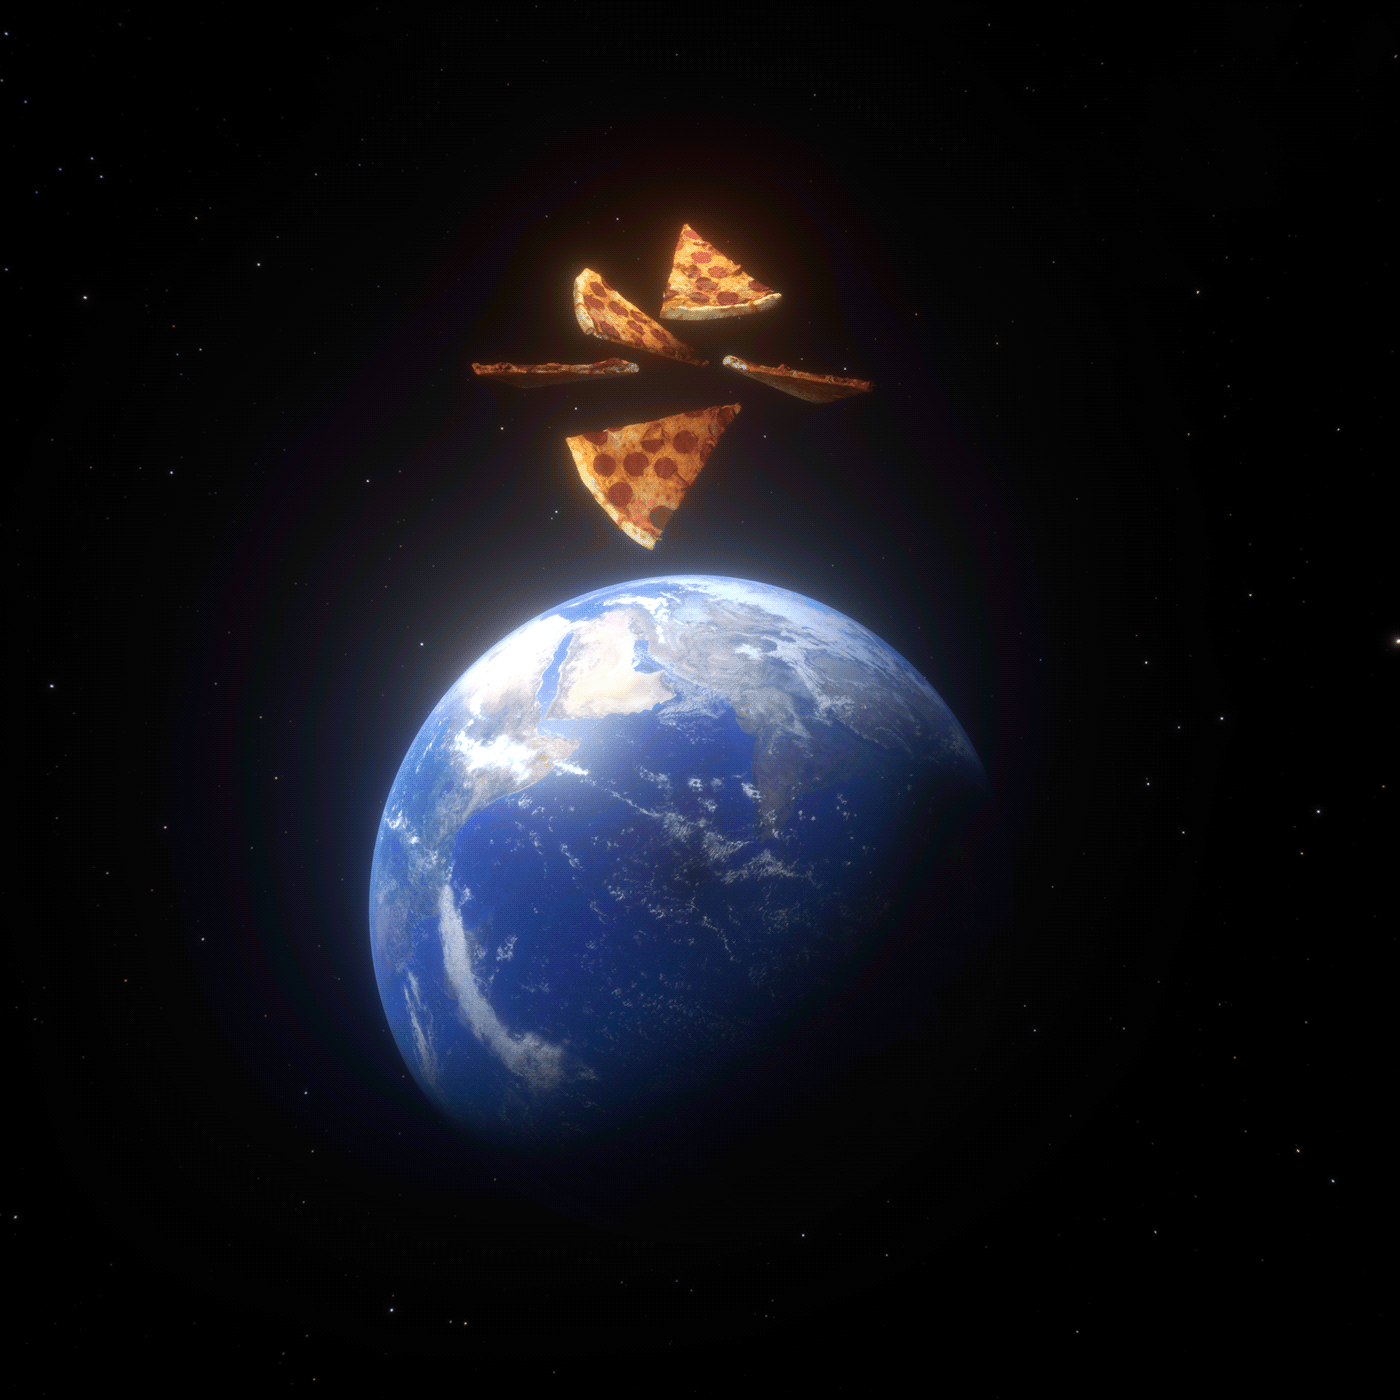 Cyberpunk earth independence day Pizza Sci Fi sci fi pizza Space  world